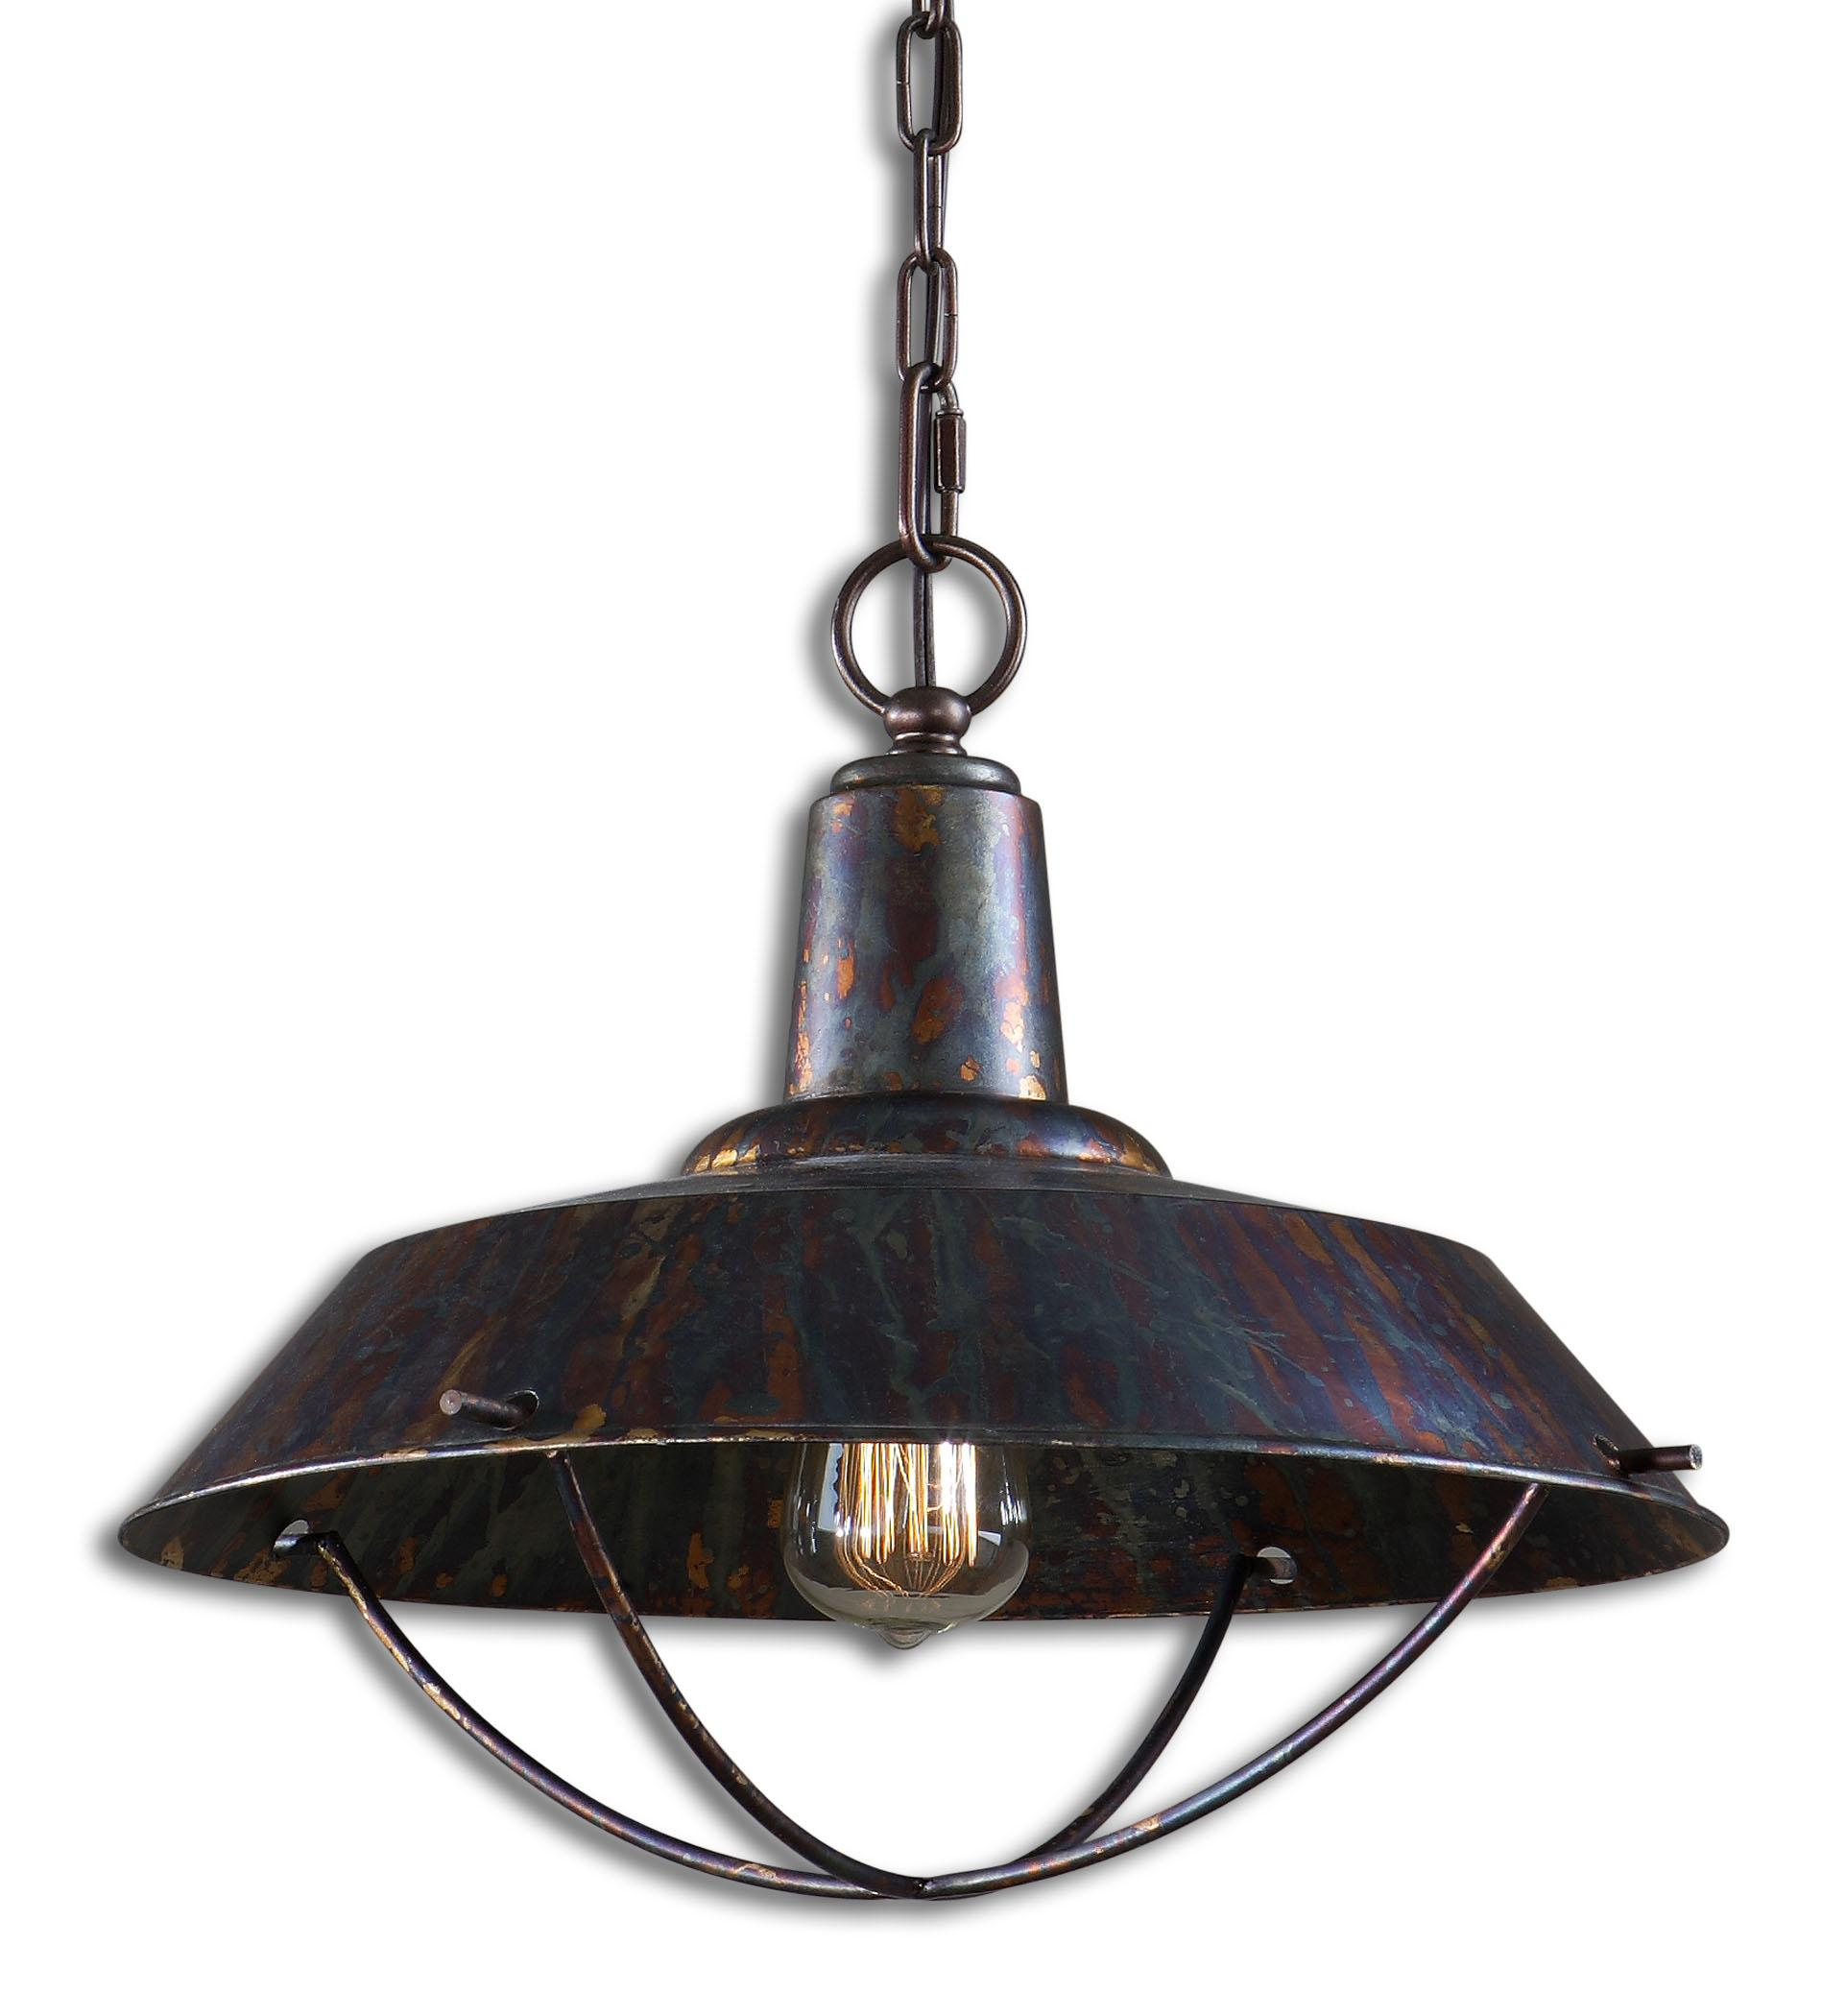 Uttermost Lighting Fixtures Arcada 1 Light Bronze Pendant - Item Number: 21974